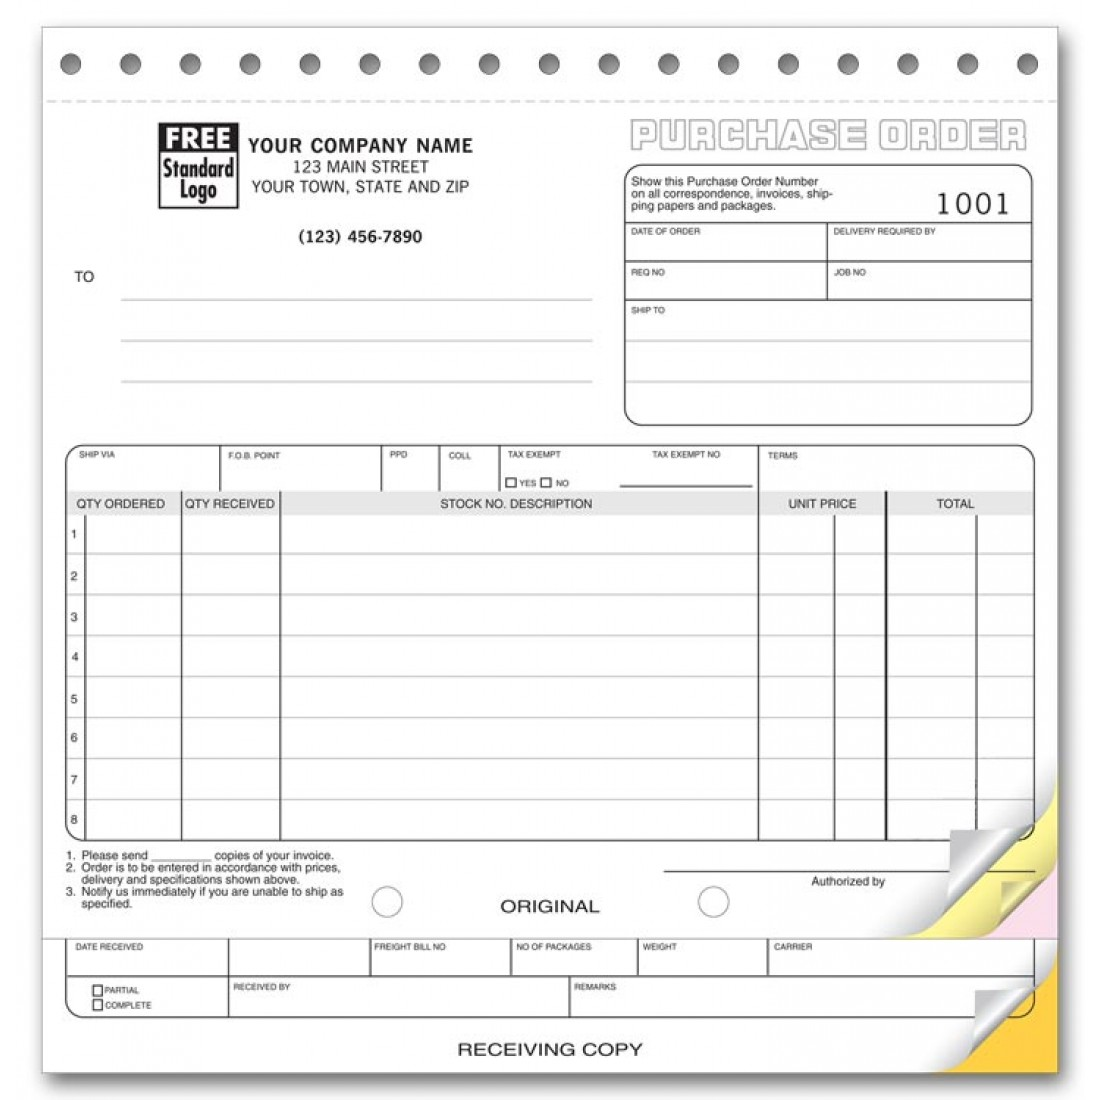 Order purchase order forms at printez and save print ez purchase order forms with receiving report falaconquin